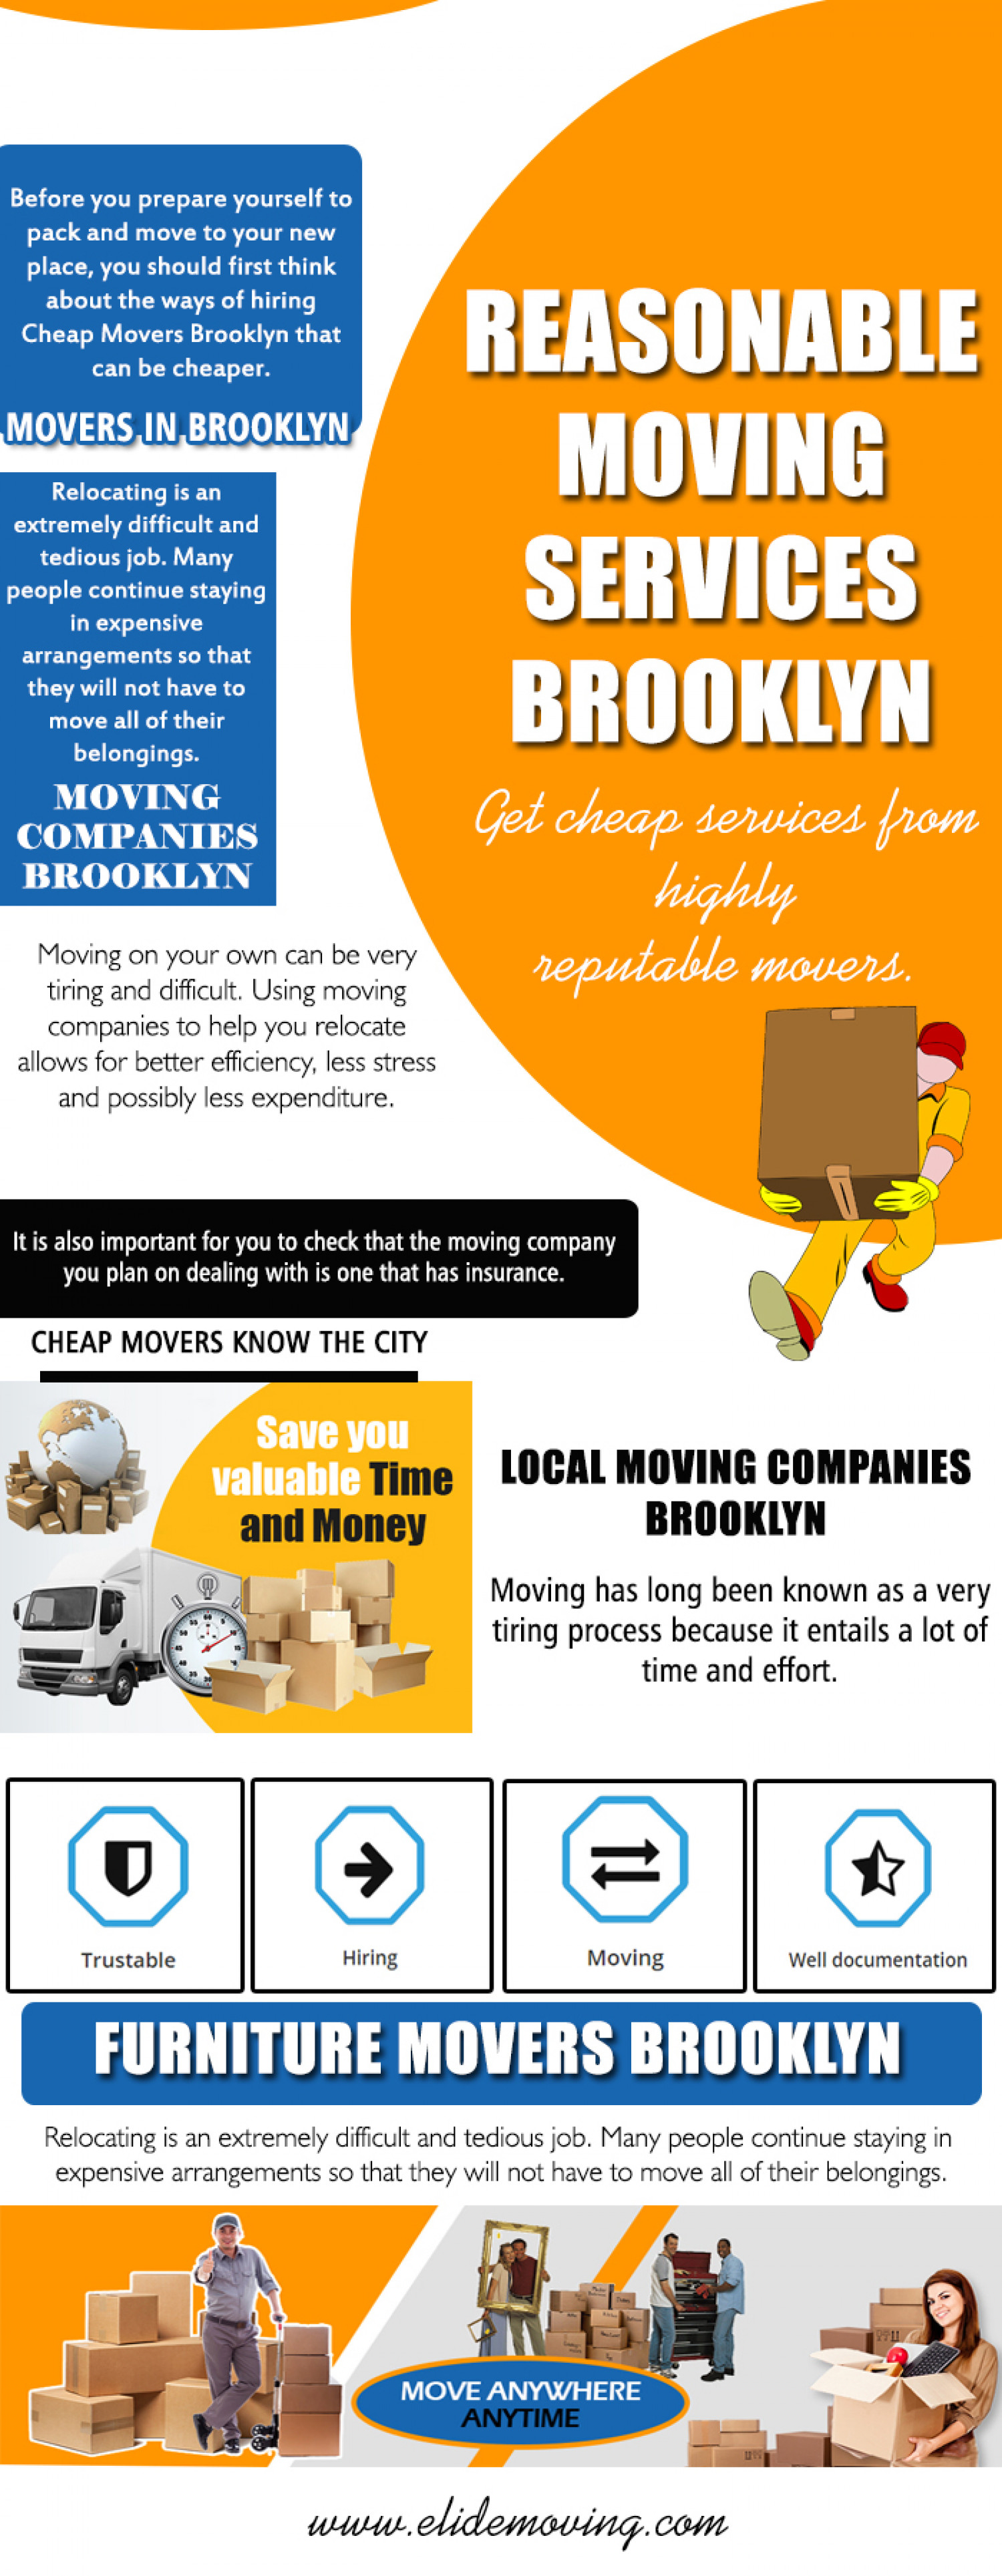 Brooklyn Moving Companies Infographic